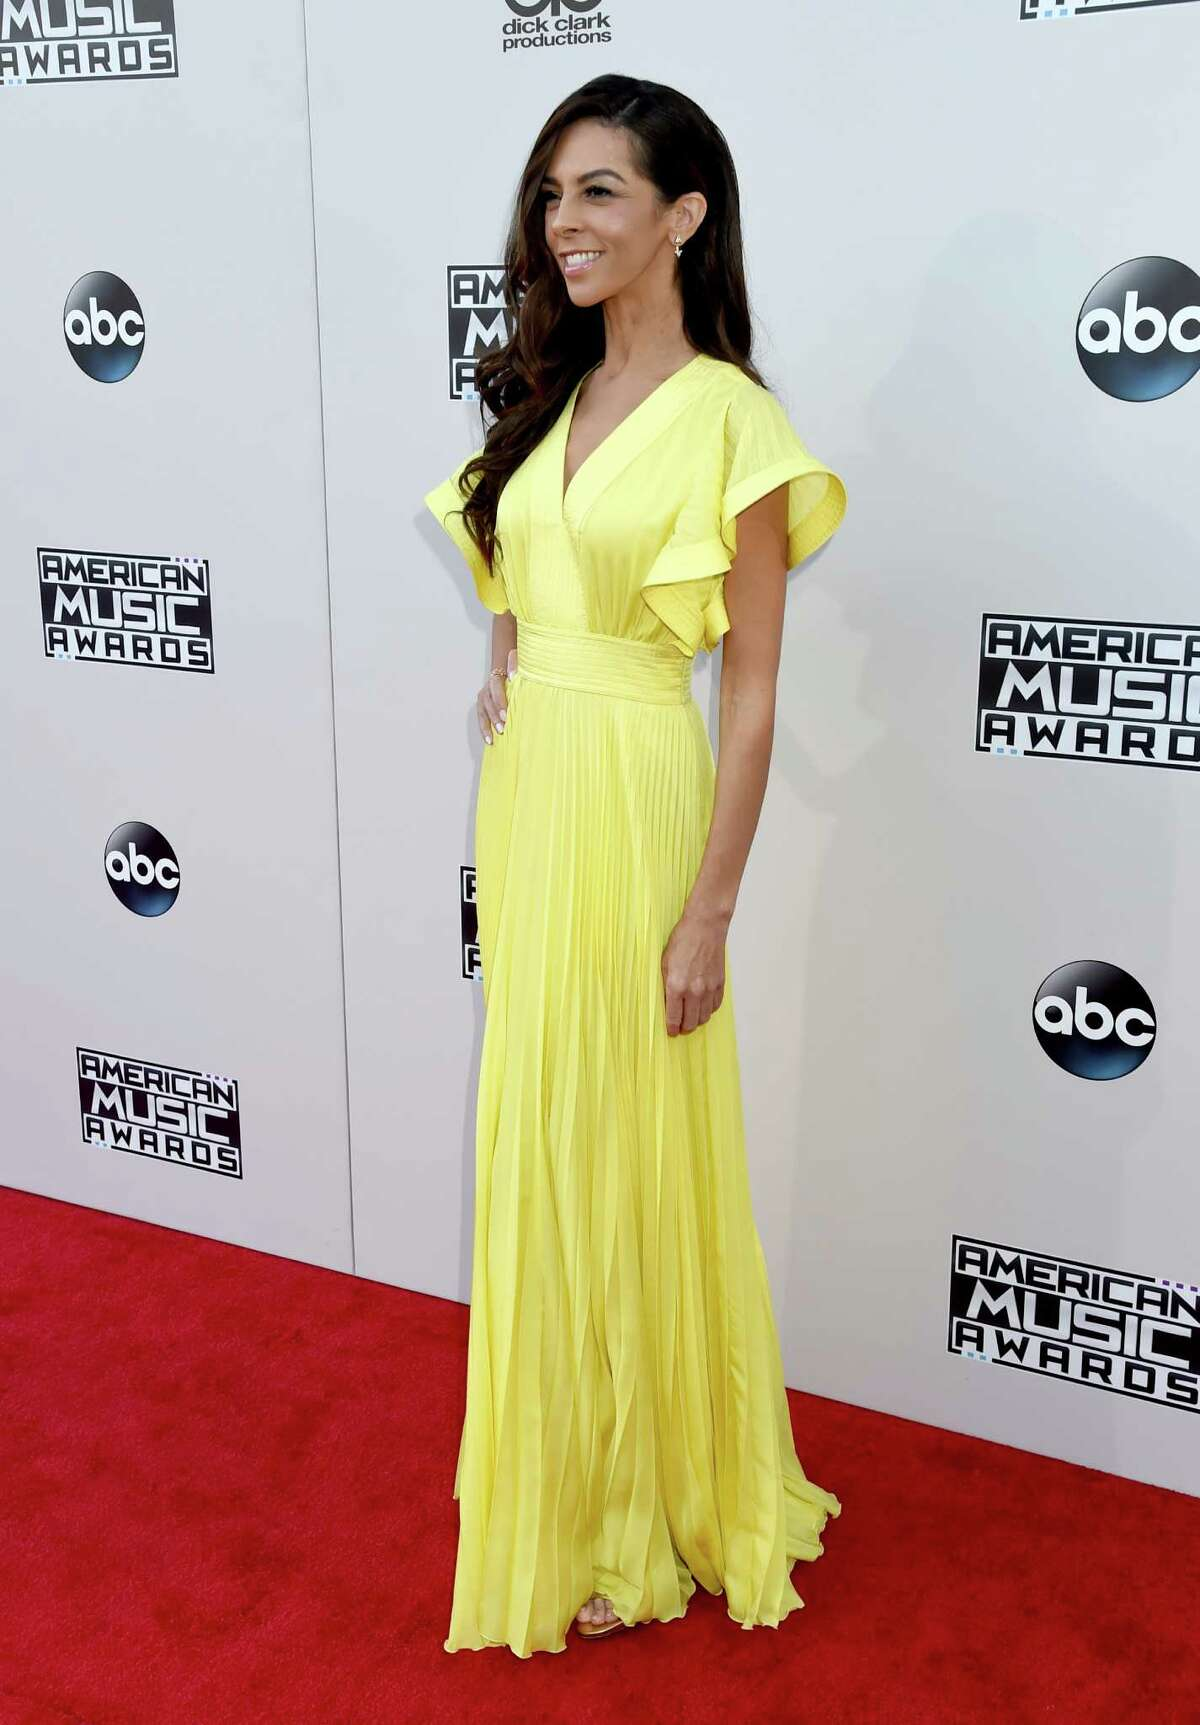 TV personality Terri Seymour attends the 2015 American Music Awards at Microsoft Theater on November 22, 2015 in Los Angeles, California.